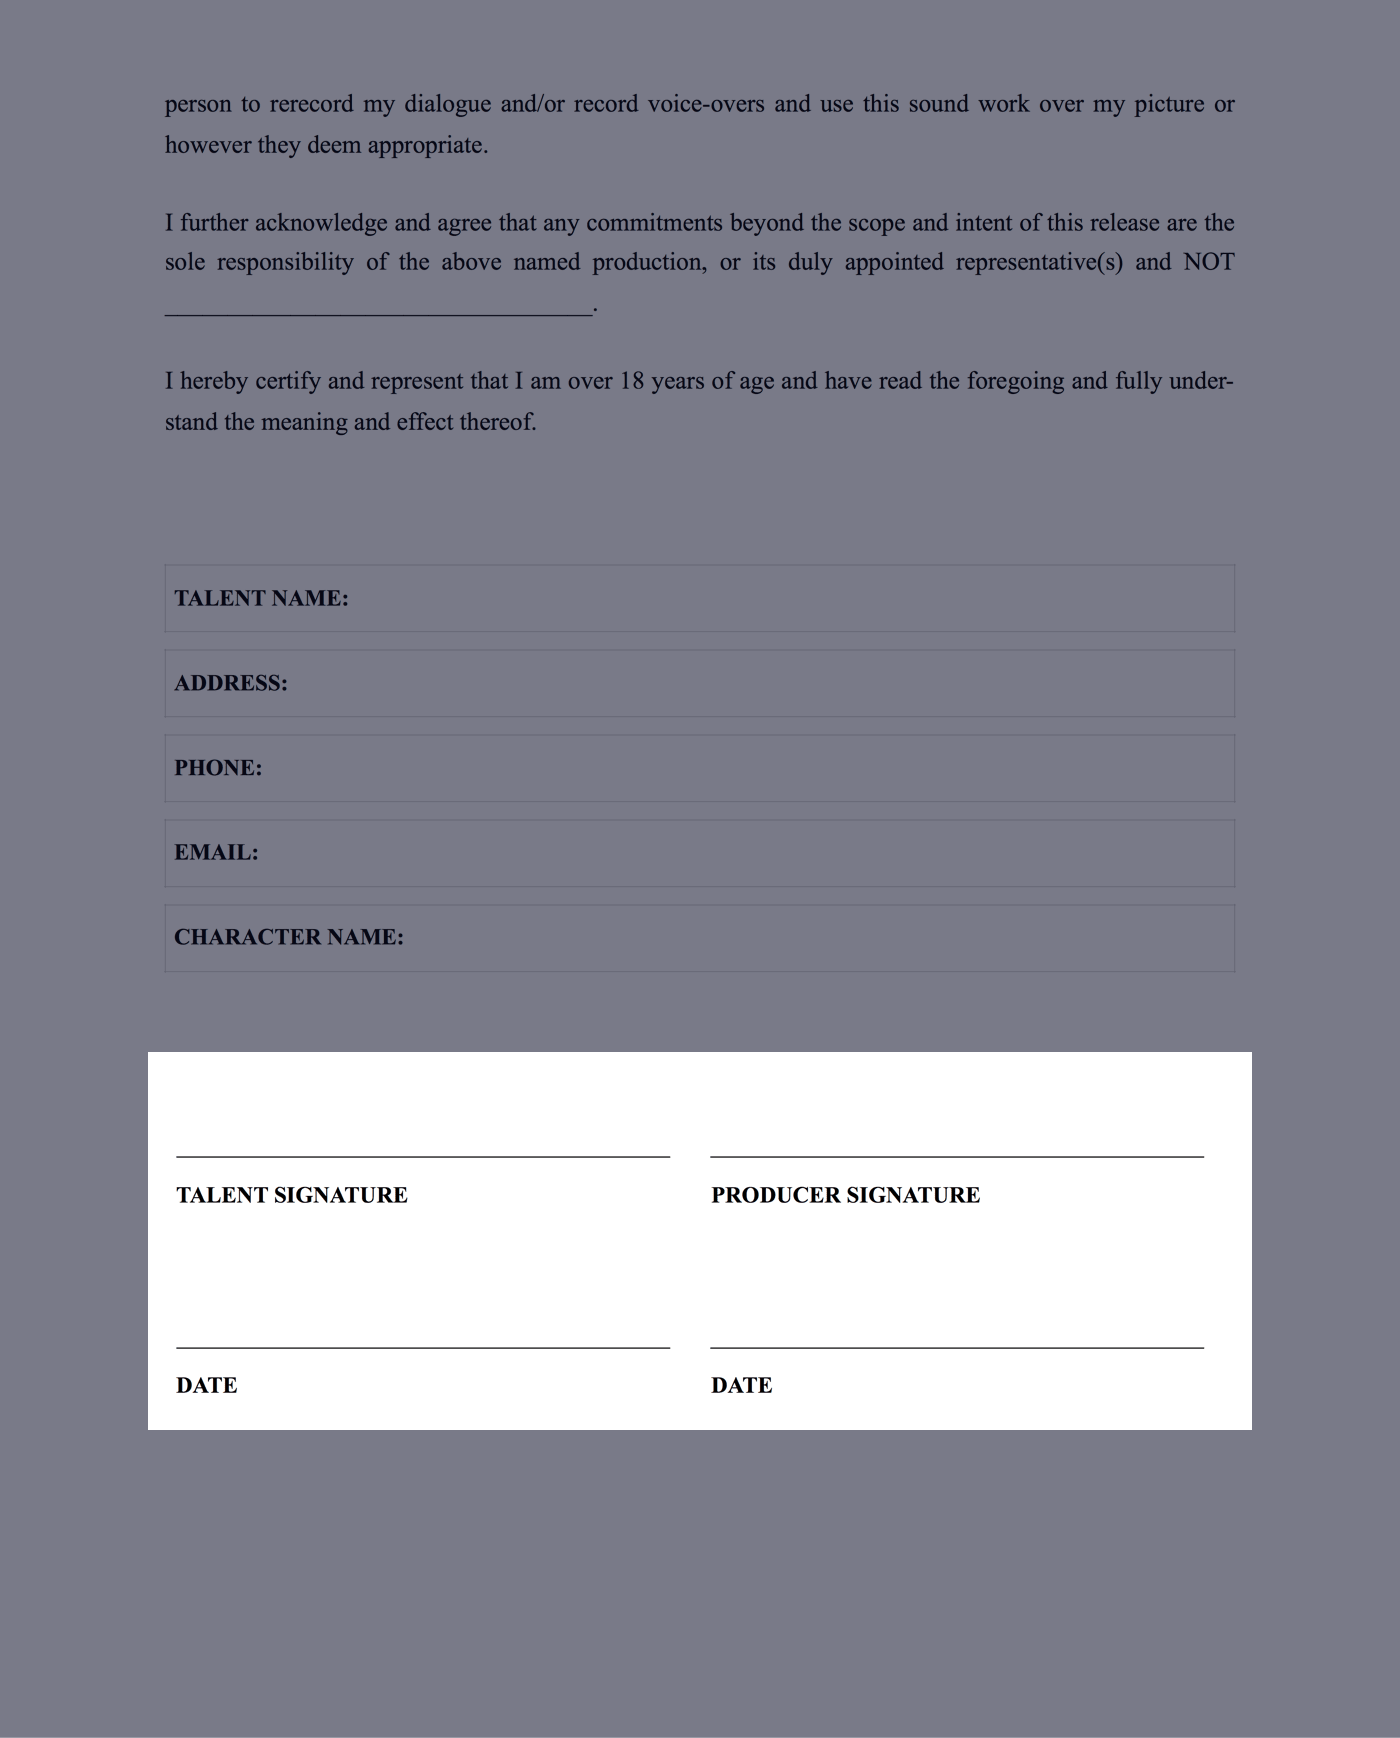 Film Actor Release Form Template - Talent and Producers Signatures - StudioBinder